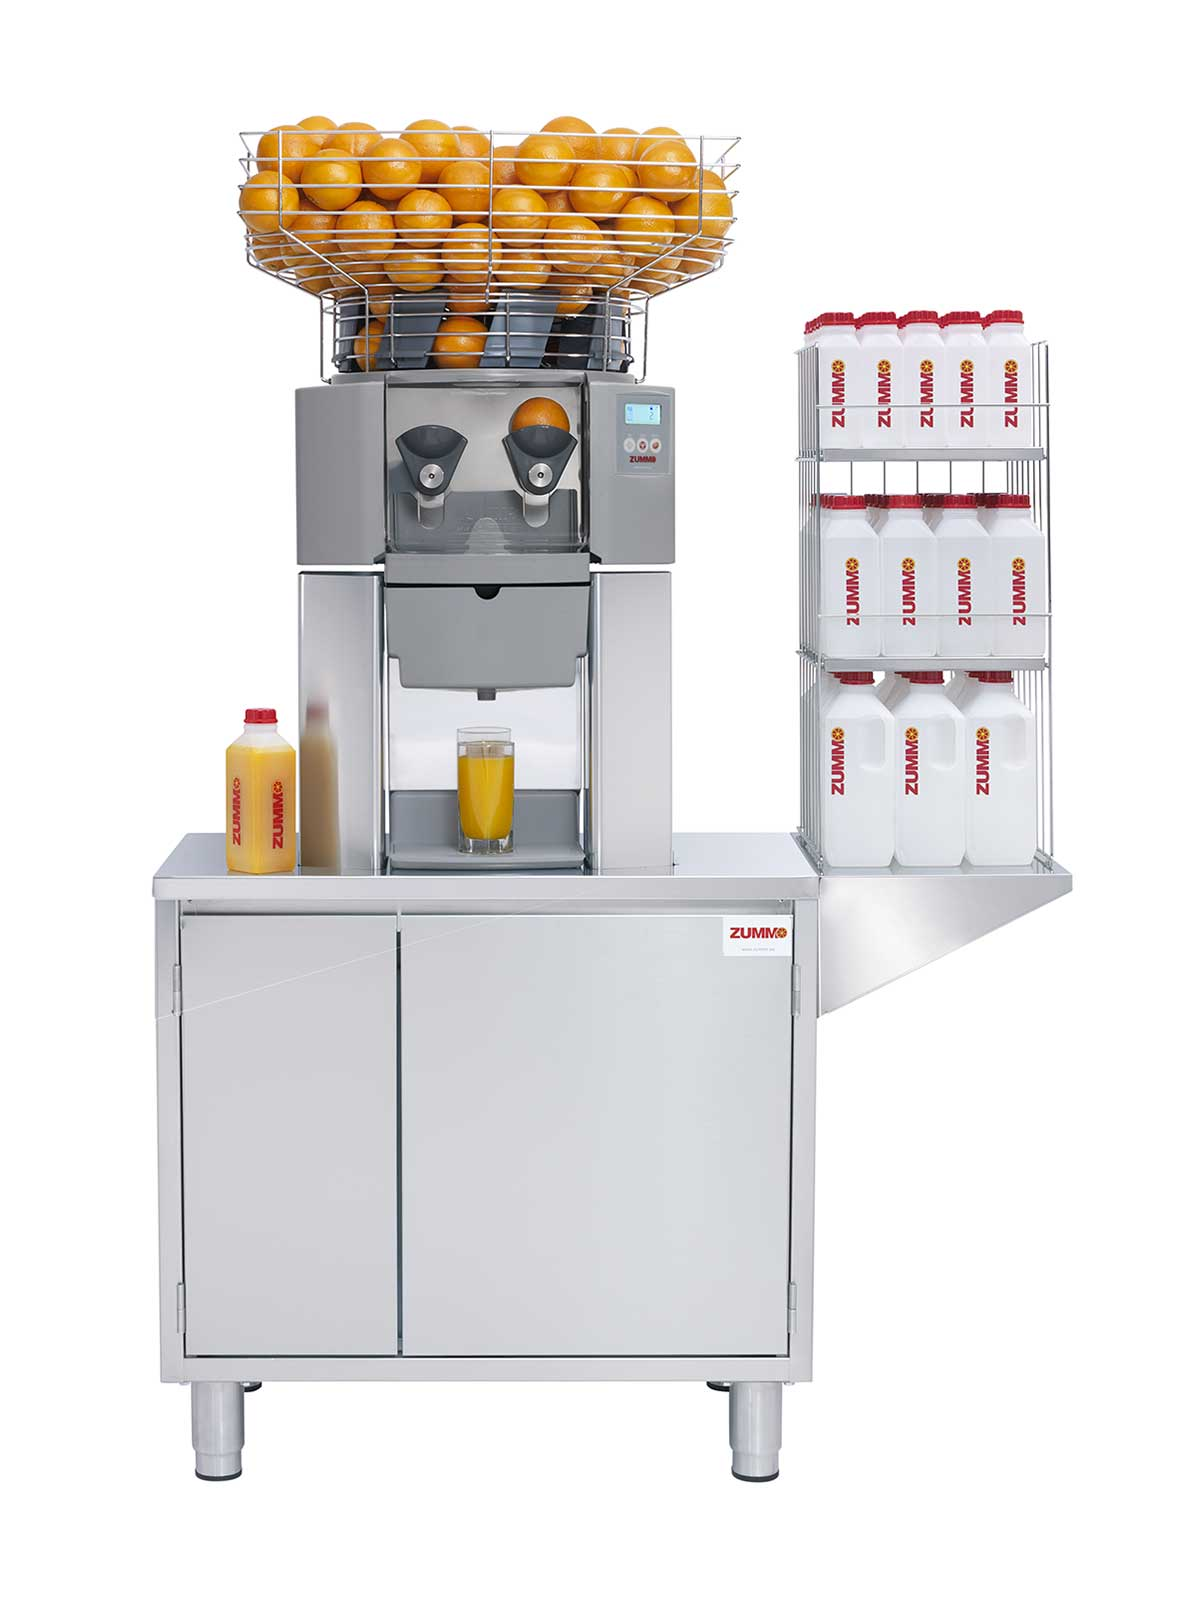 Machine A Presser Les Oranges Machine Presse Orange Presse Agrumes Professionnel Et